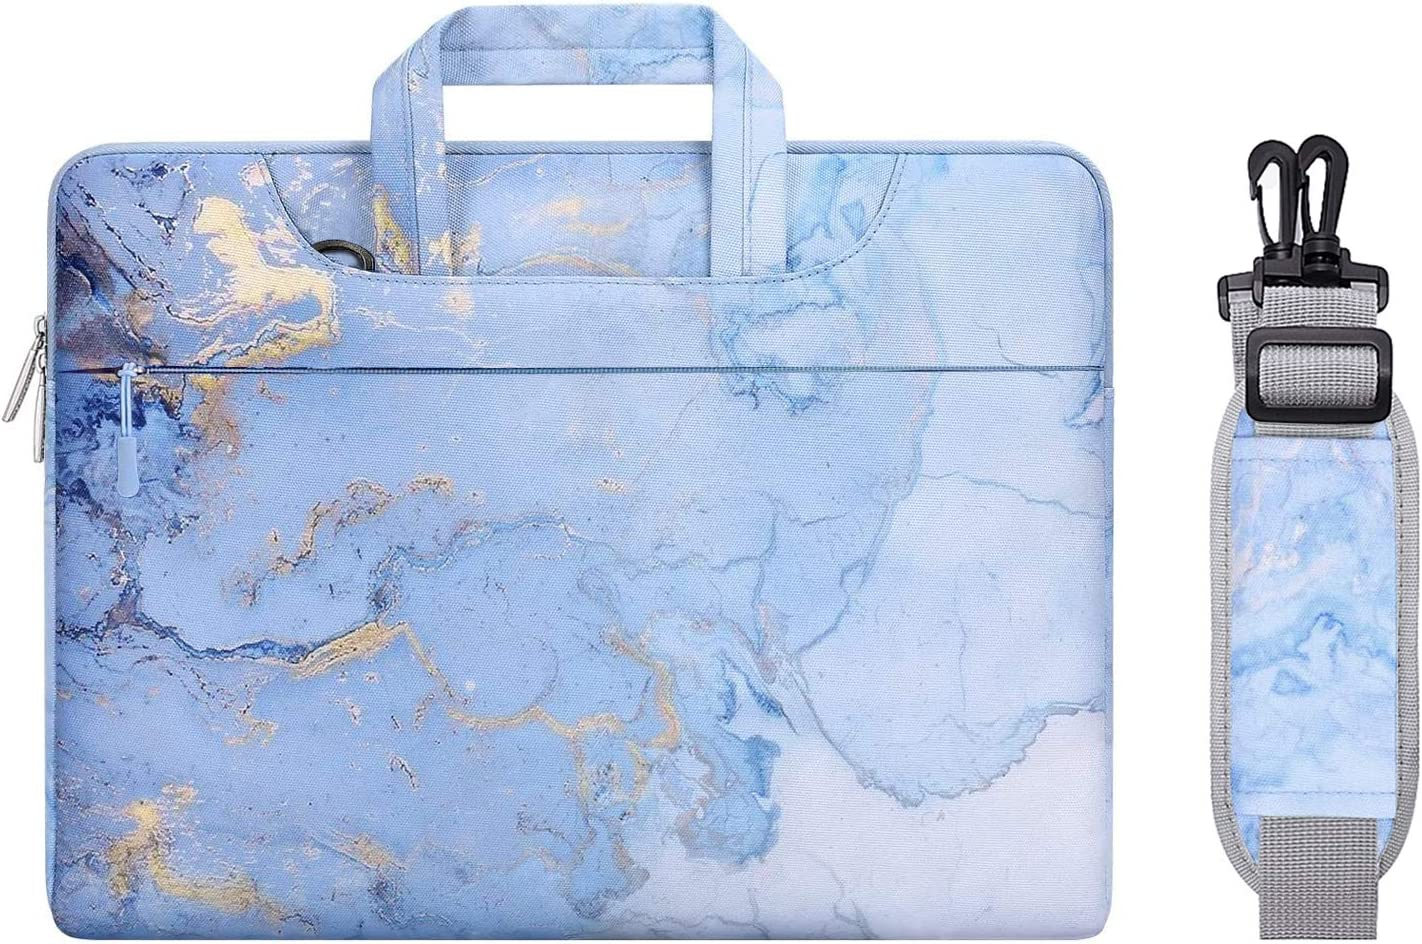 MOSISO Laptop Shoulder Bag Compatible with 2019 MacBook Pro 16 inch A2141, 15 15.4 15.6 inch Dell Lenovo HP Asus Acer Samsung Chromebook,Polyester Watercolor Marble Carrying Briefcase Sleeve, Blue